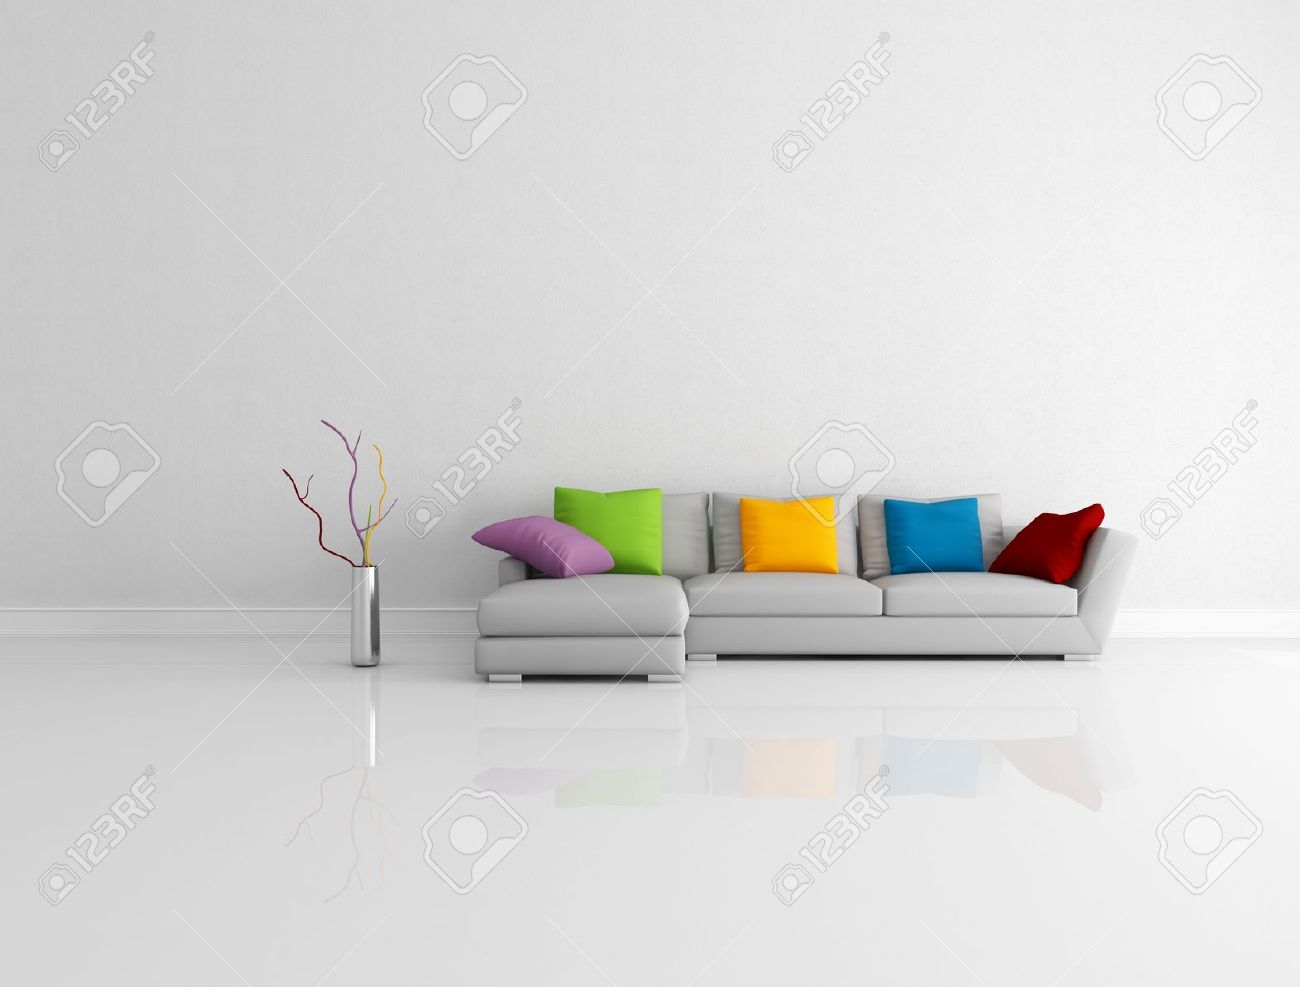 Gray Modern Couch With Colored Pillow In A Bright Empty Living Room